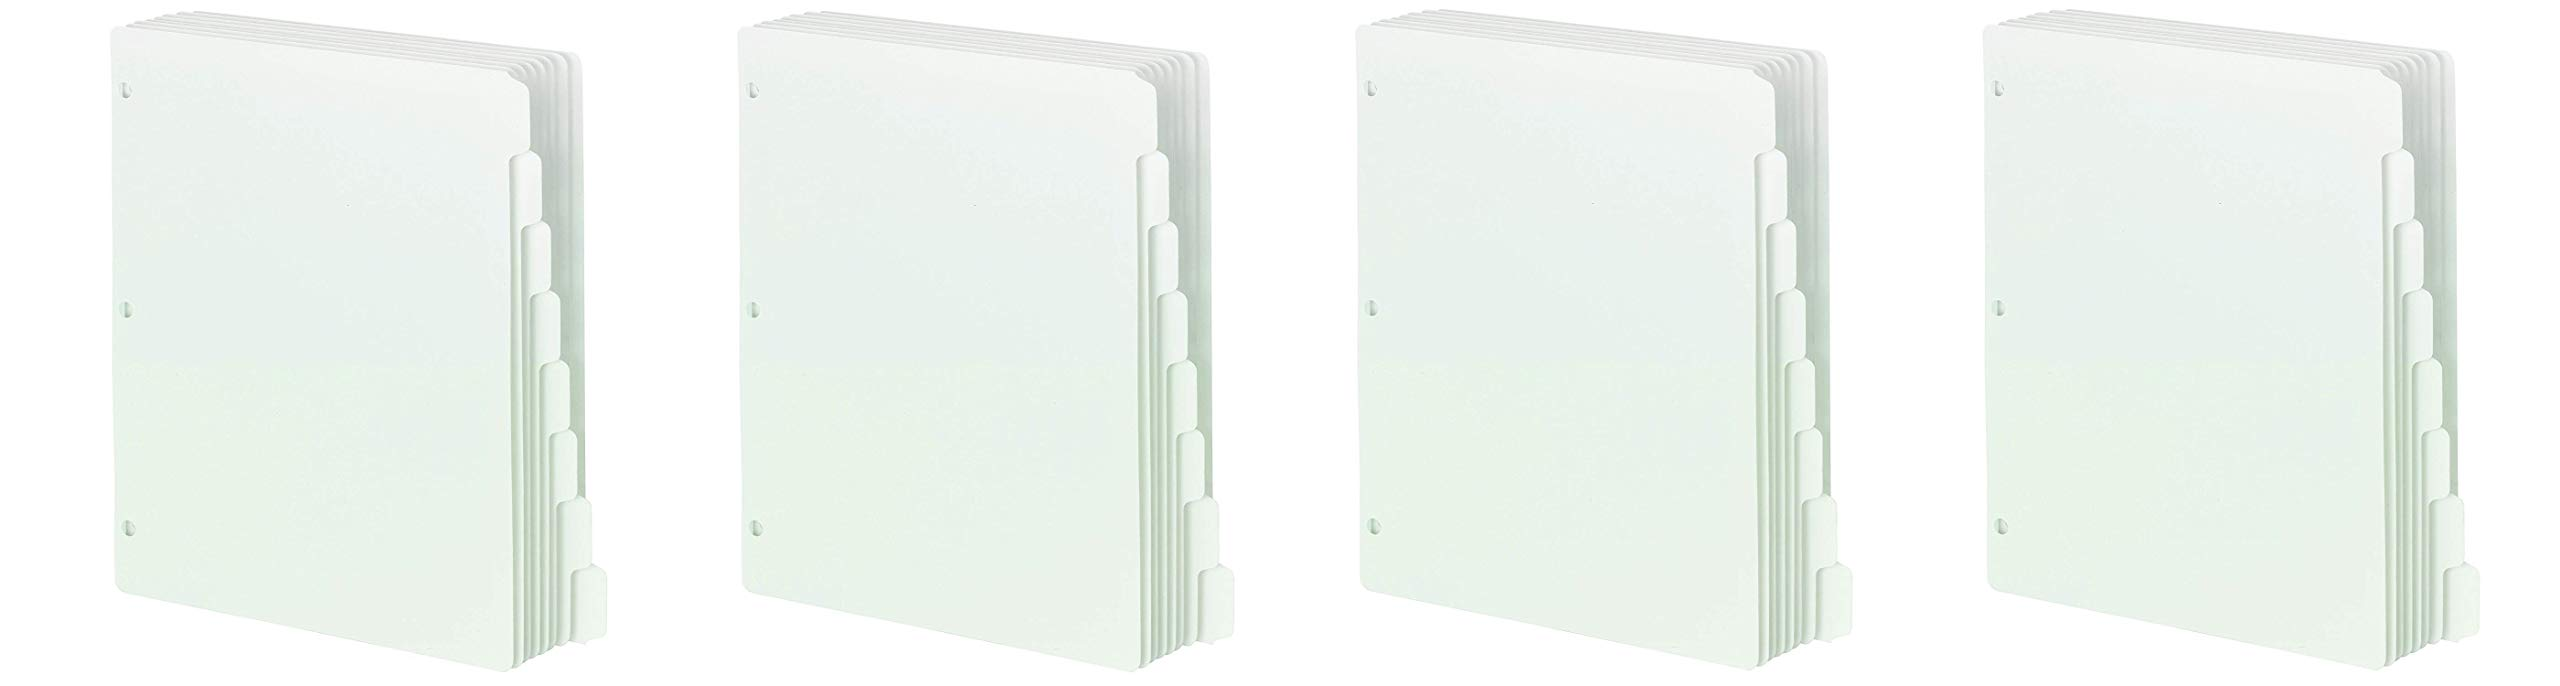 Smead Three-Ring Binder Index Dividers, 1/8-Cut Tab, Letter Size, White, (89418) (4 X Pack of 96)